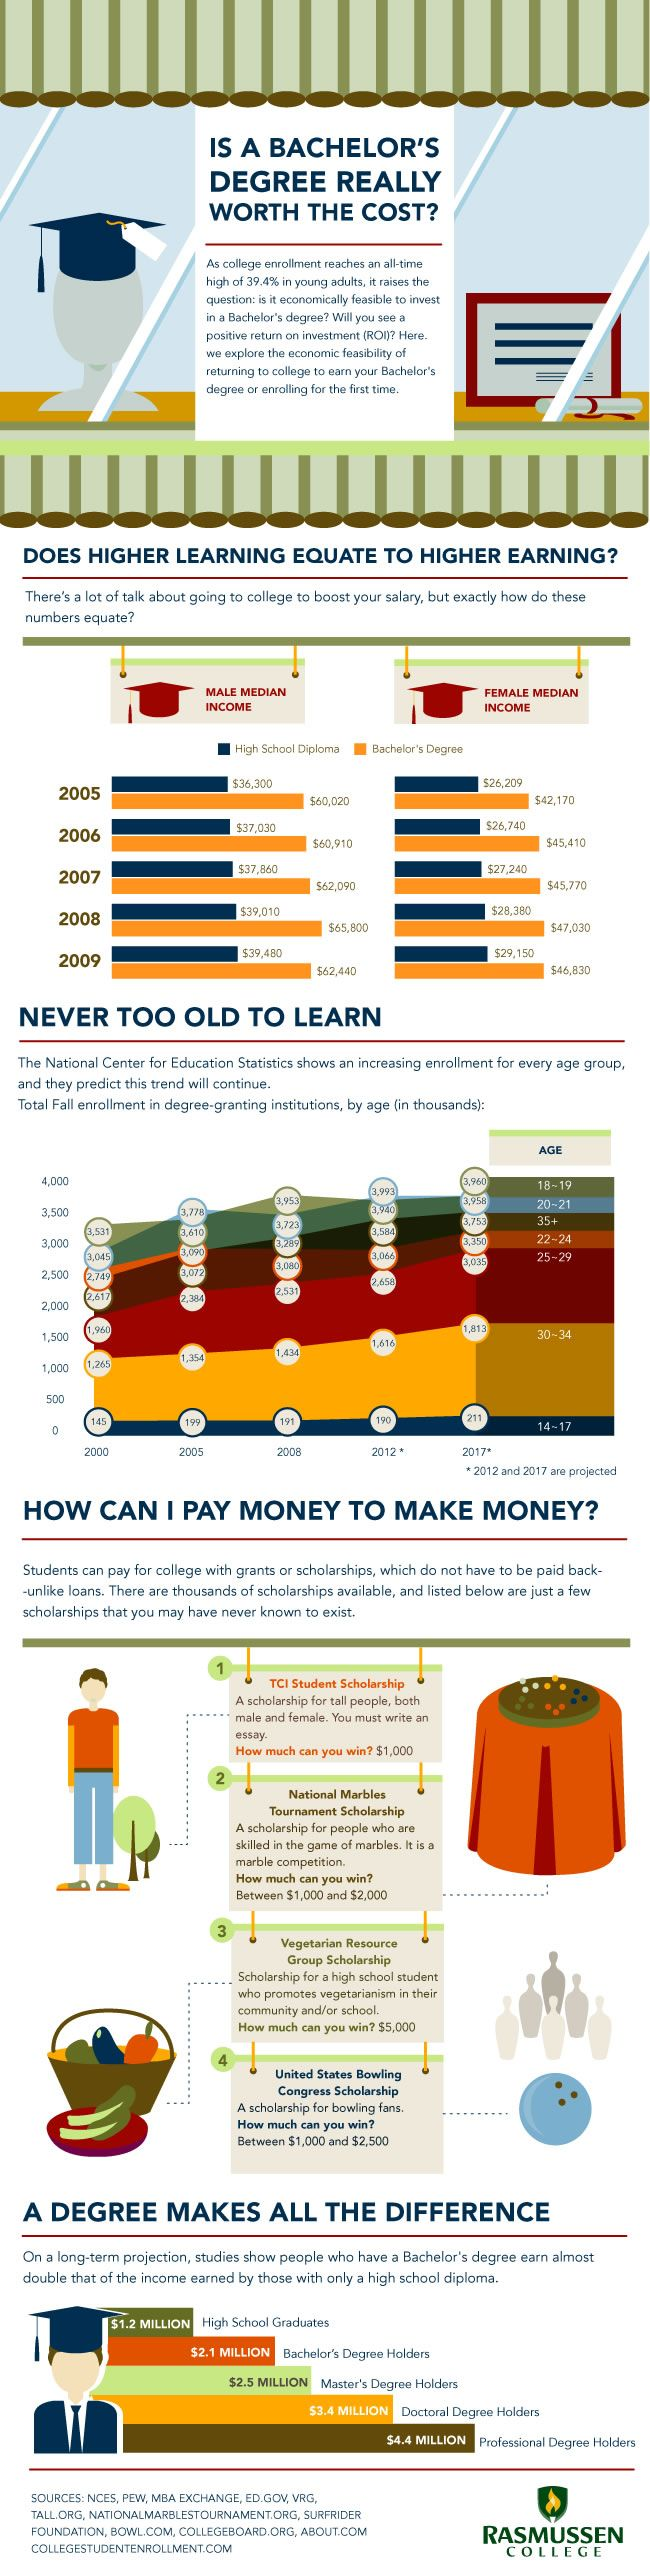 Is A Bachelor's Degree Really Worth The Cost?   usu.edu/prospective-students/